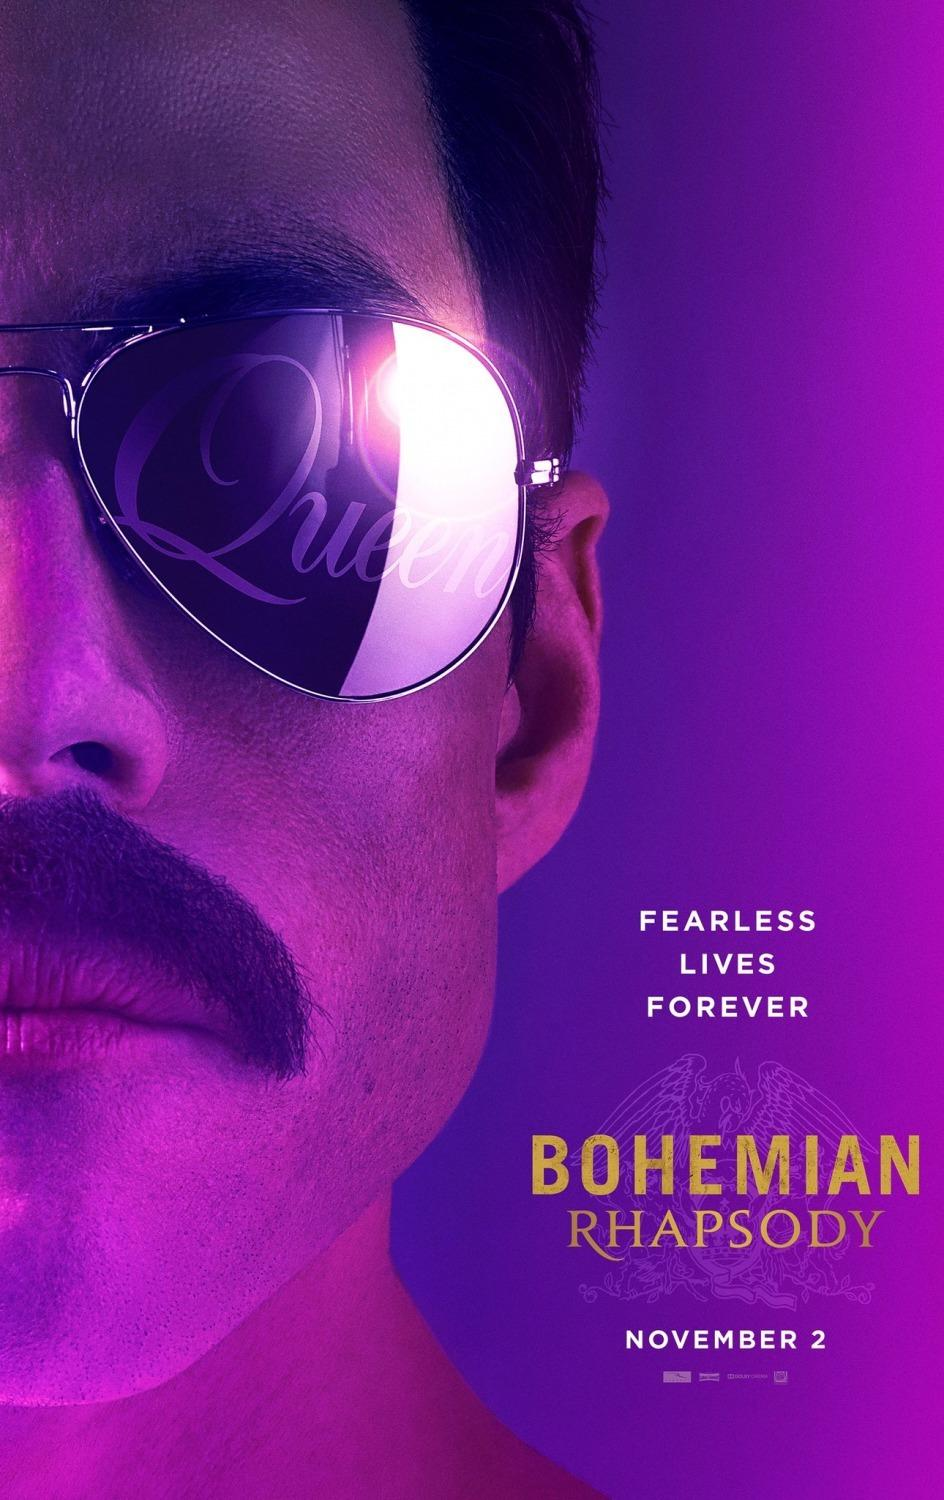 Bohemian Rhapsody: a movie review